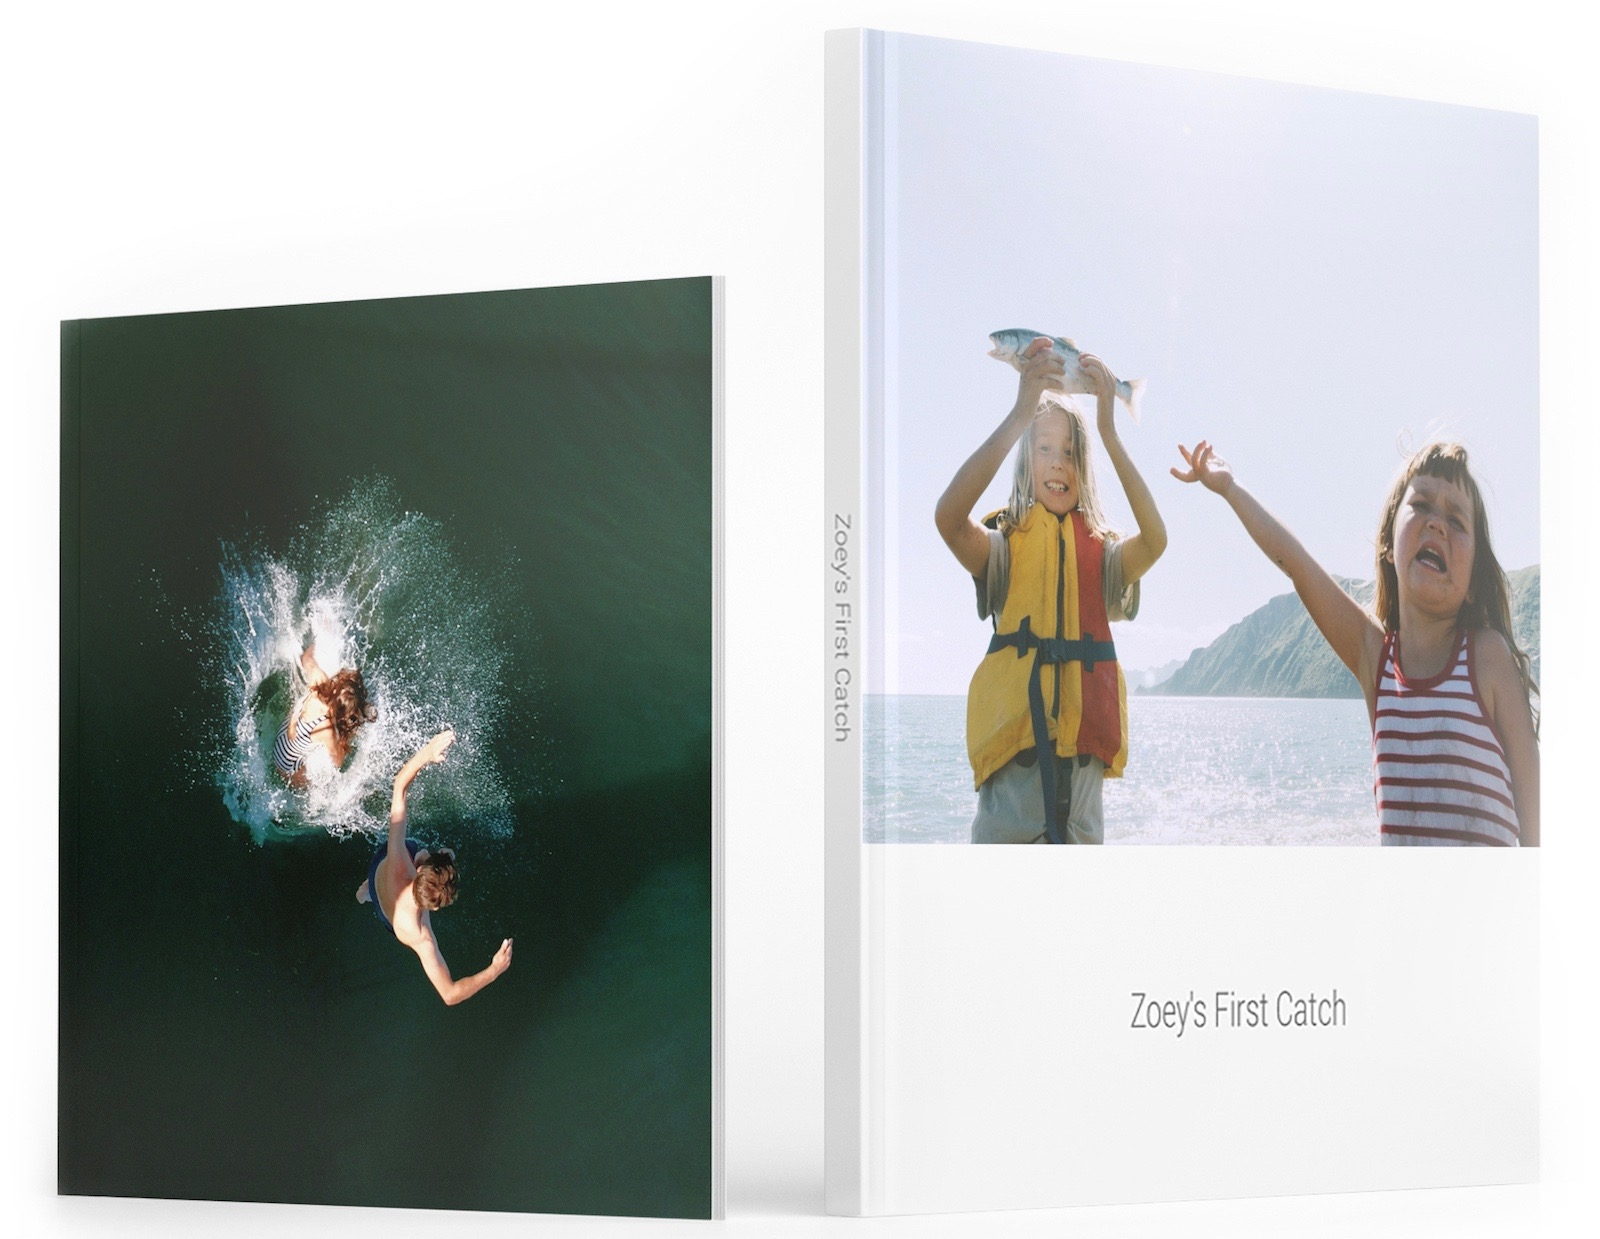 Now you can design Google Photo Books on iOS or Android